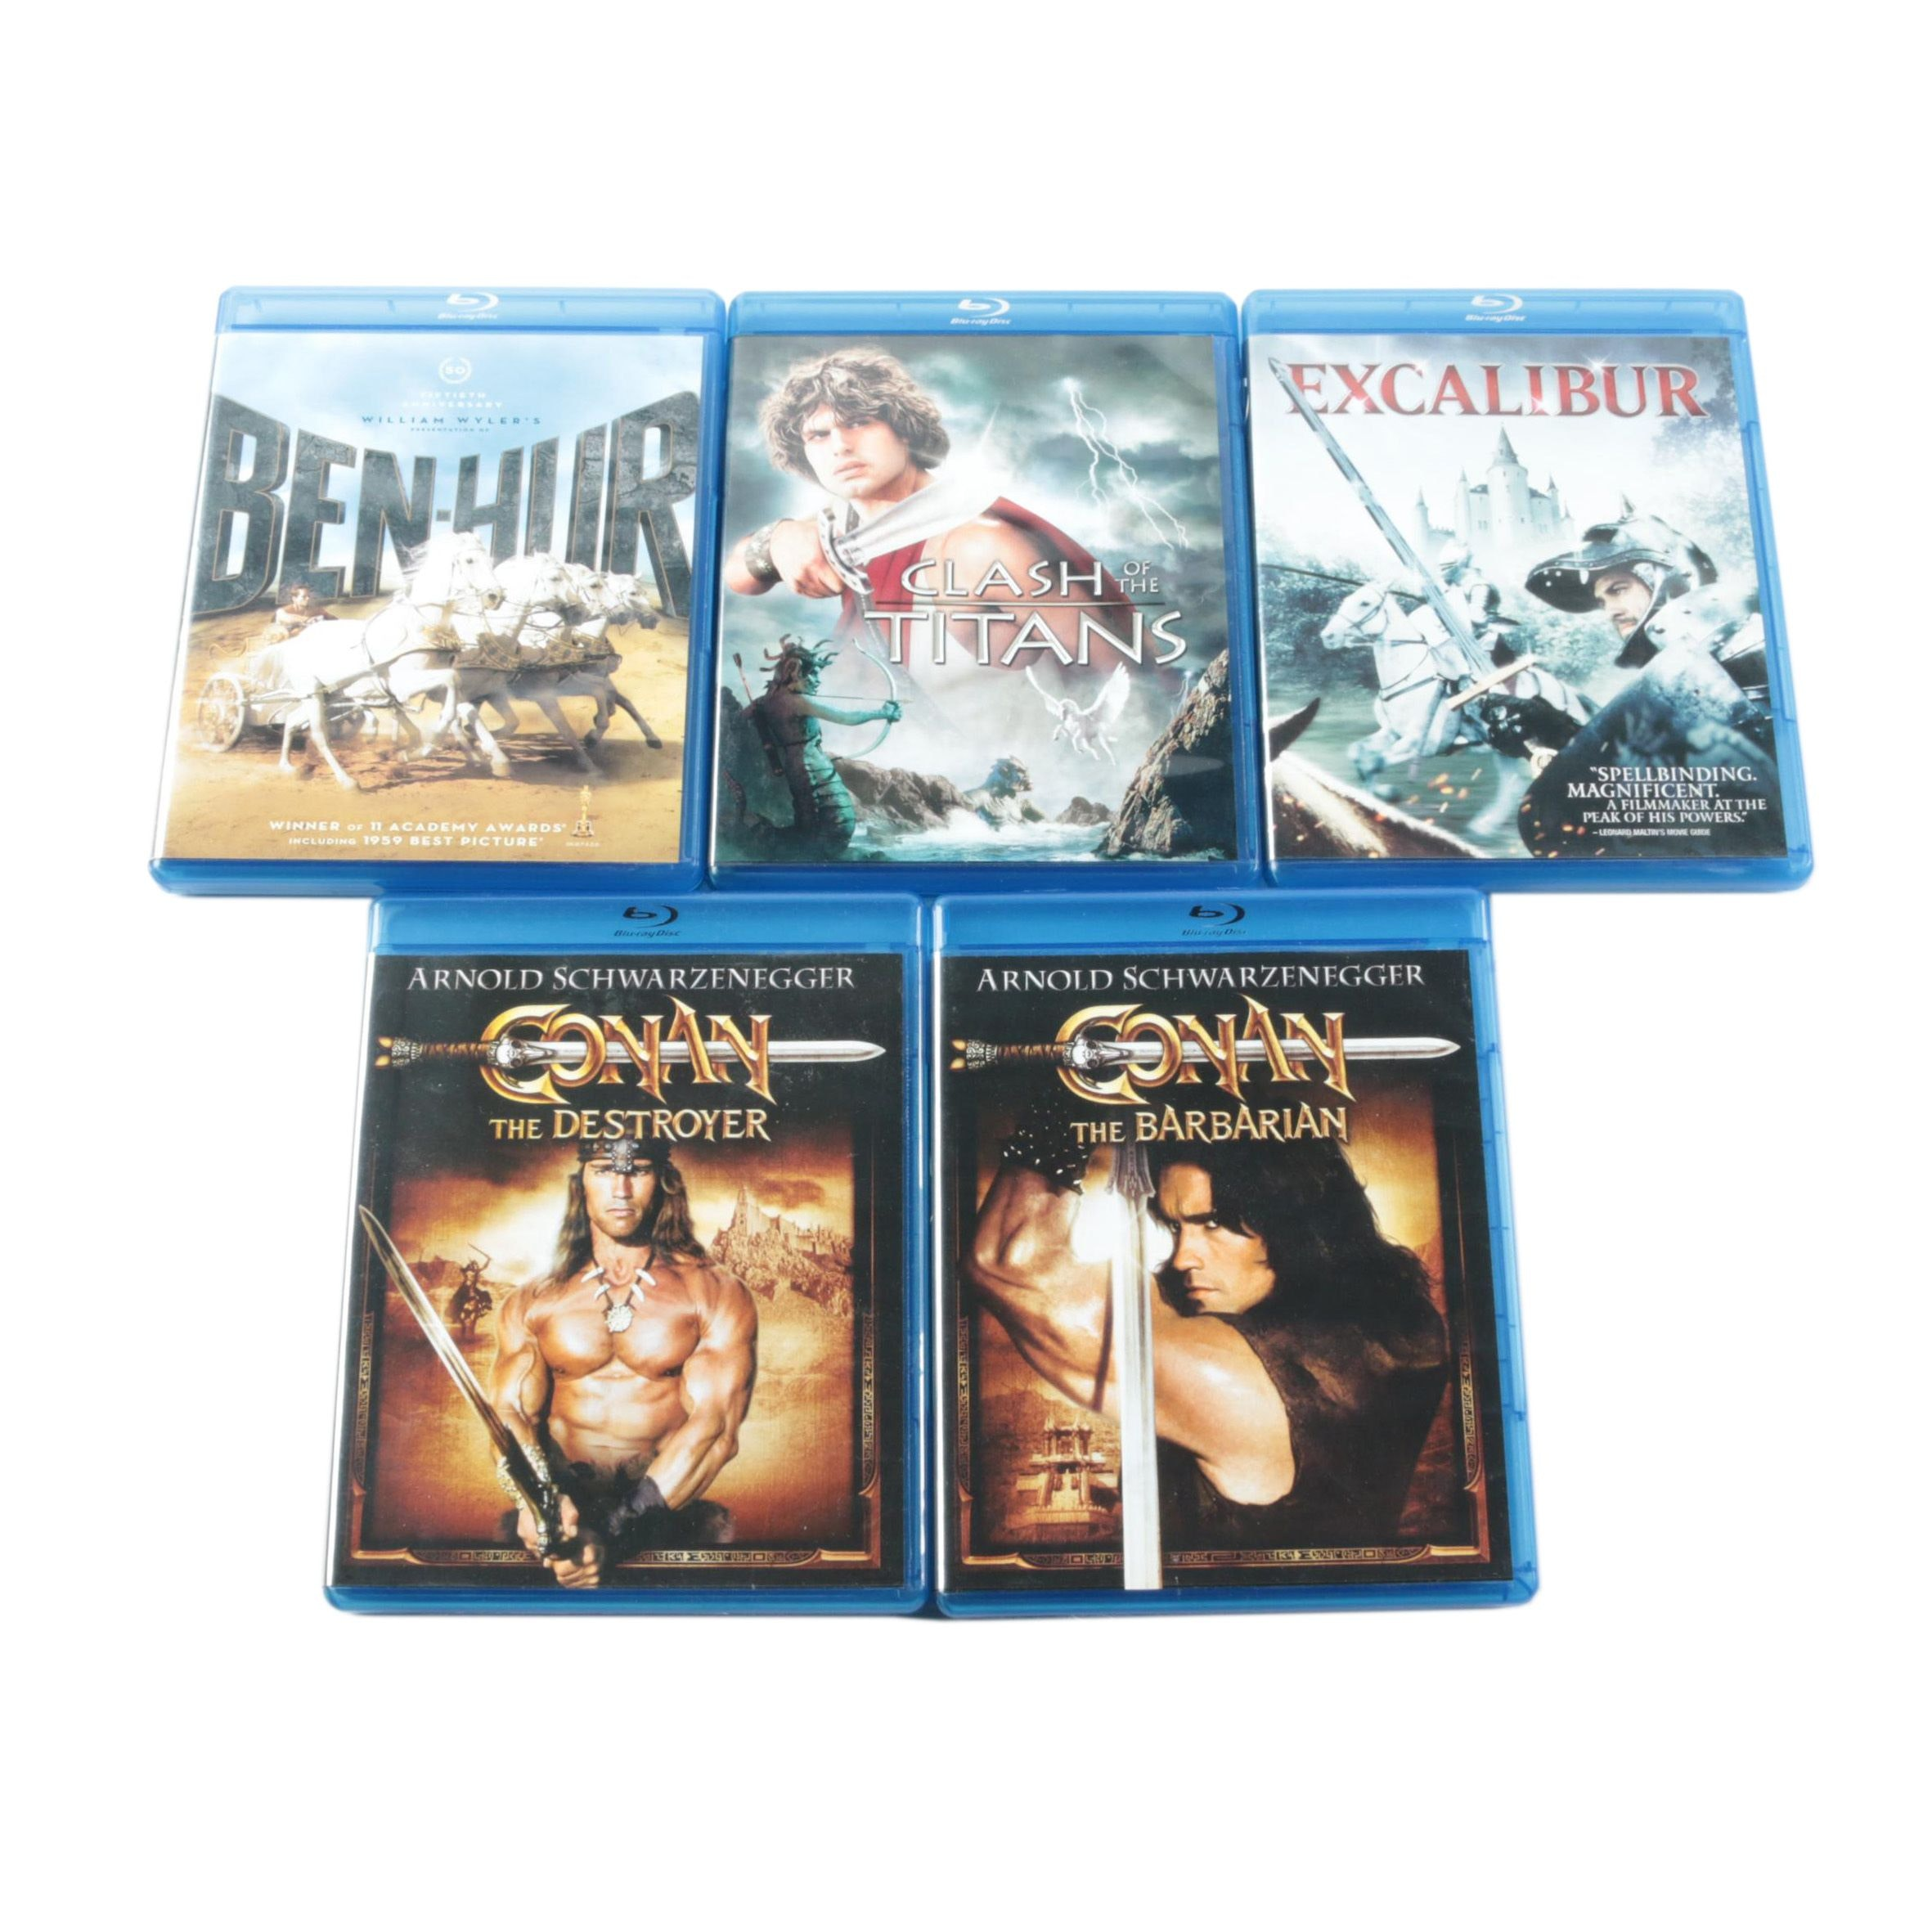 """Fantasy Movies on Blu-ray Including """"Ben-Hur"""" and """"Excalibur"""""""